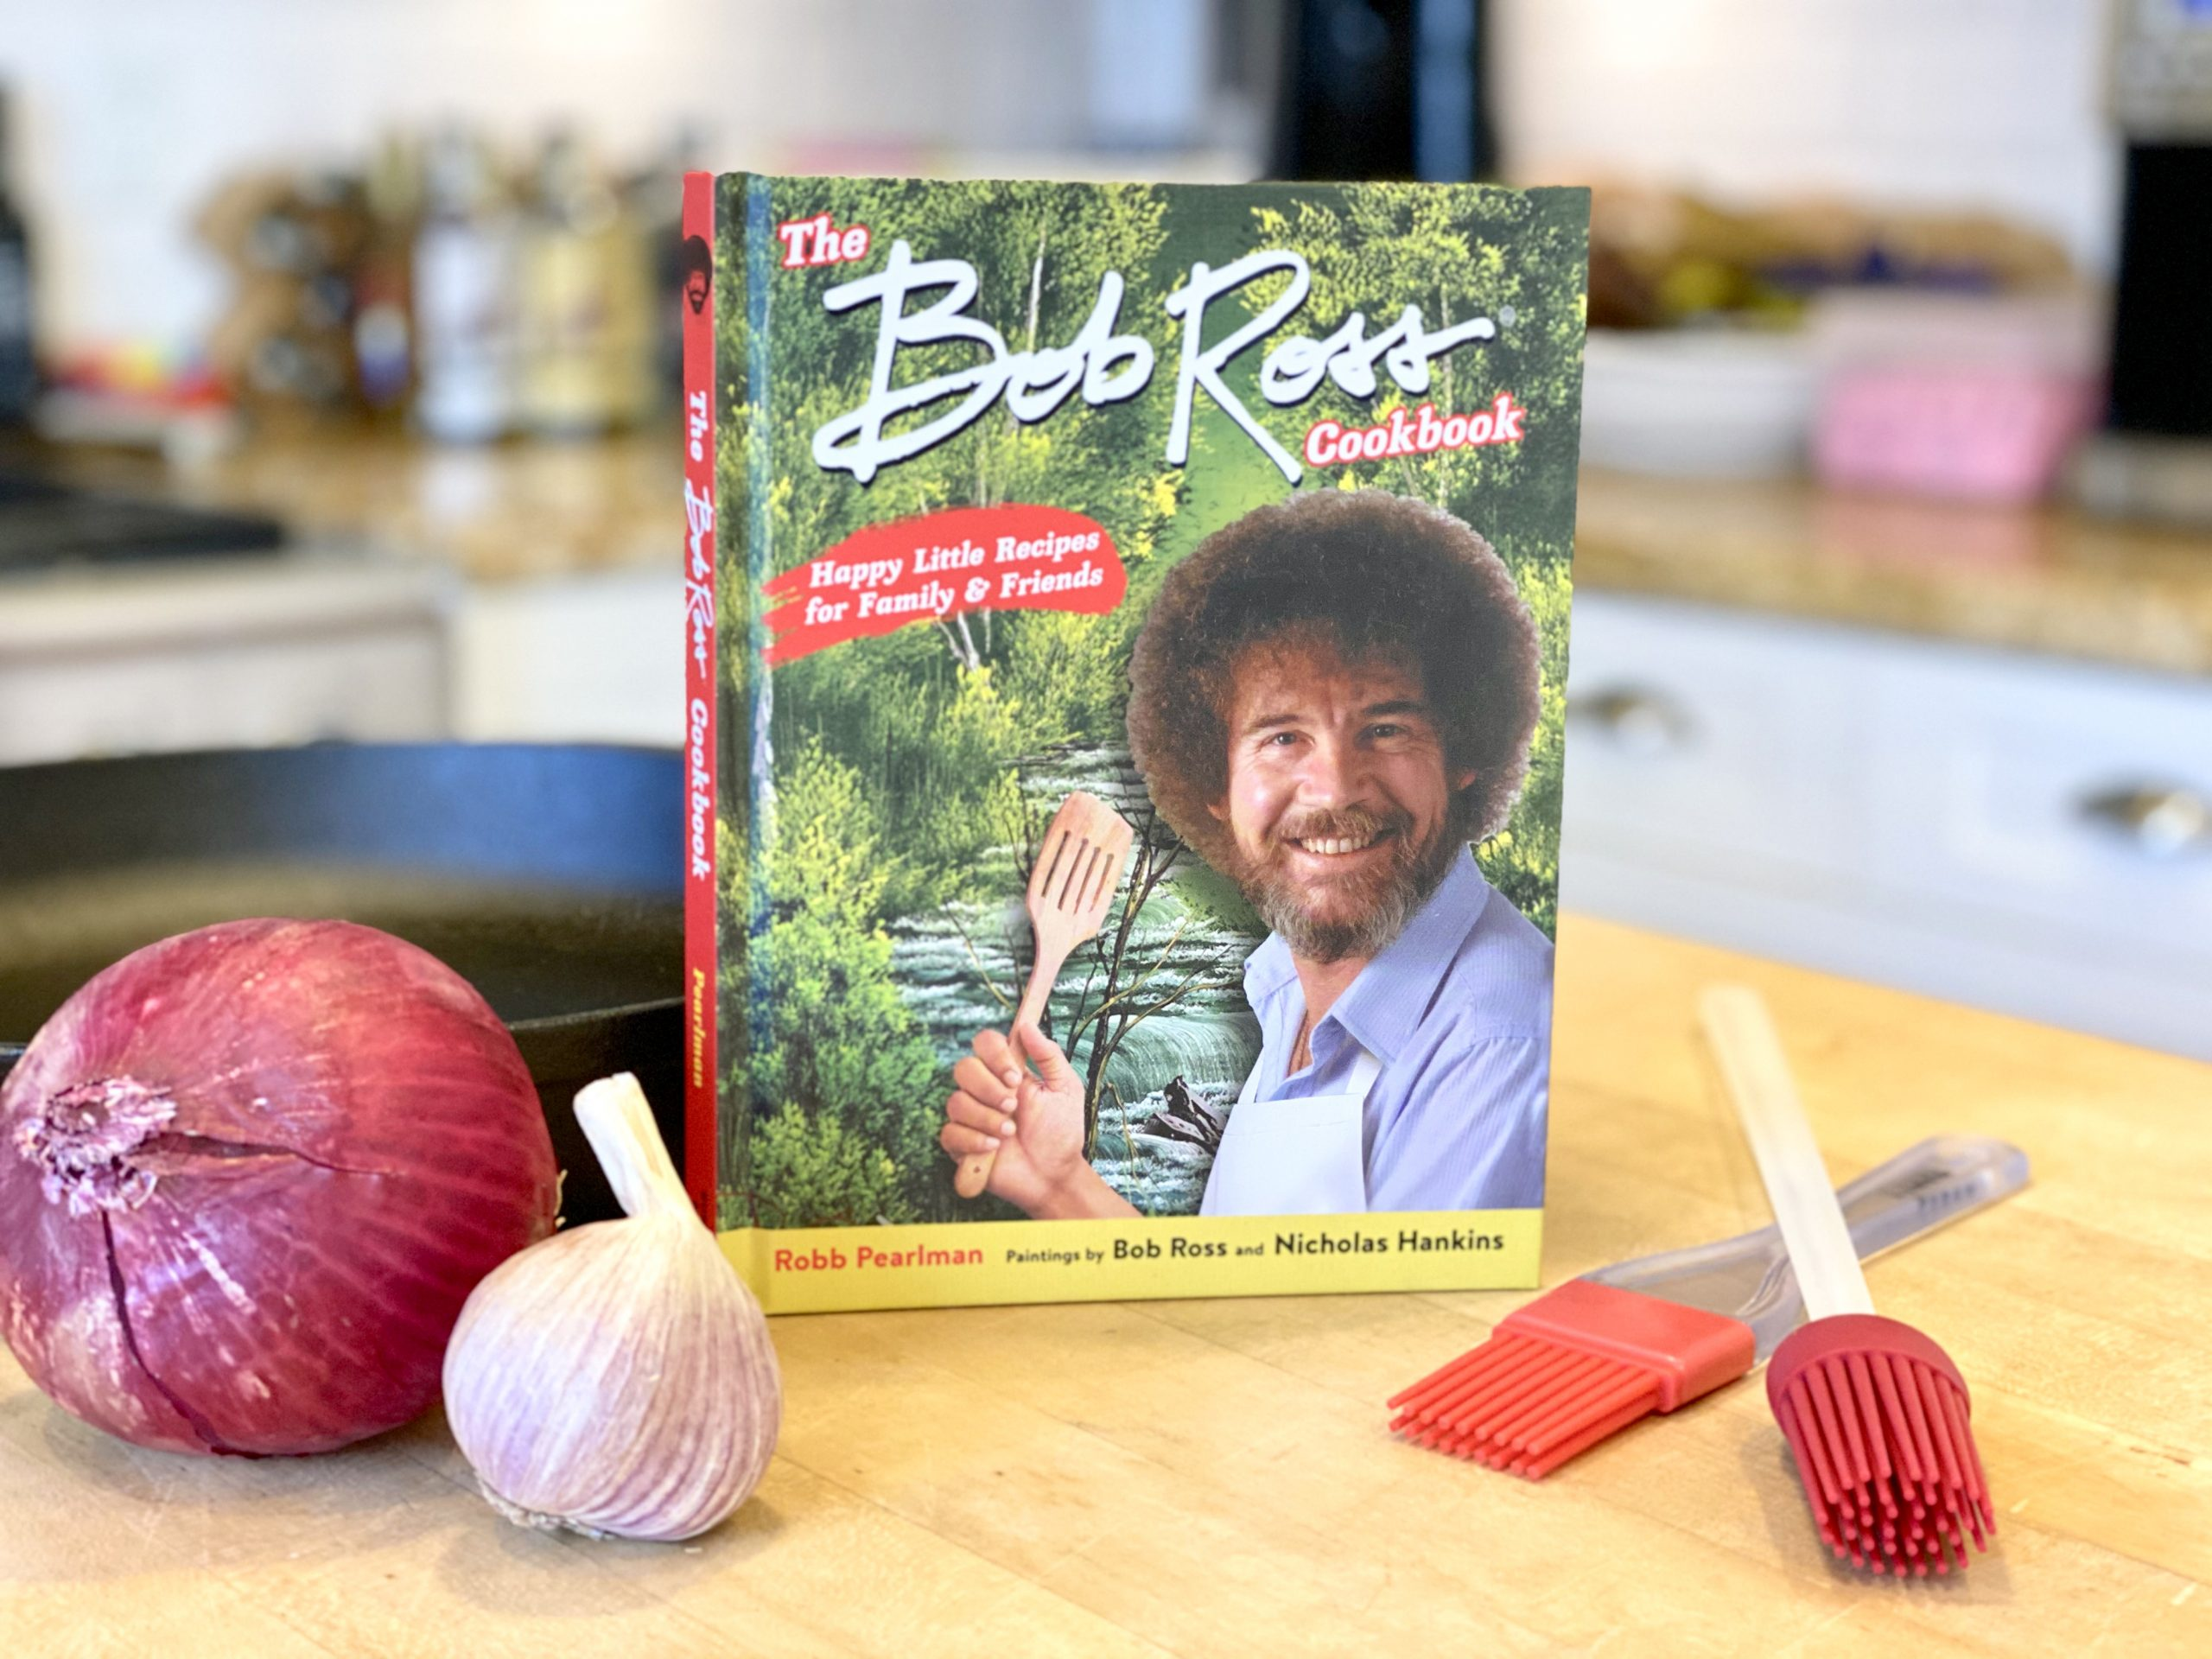 The Bob Ross Cookbook: Happy Little Recipes for Family and Friends by Robb Pearlman, Illustrated by Bob Ross and Nicholas Hankins